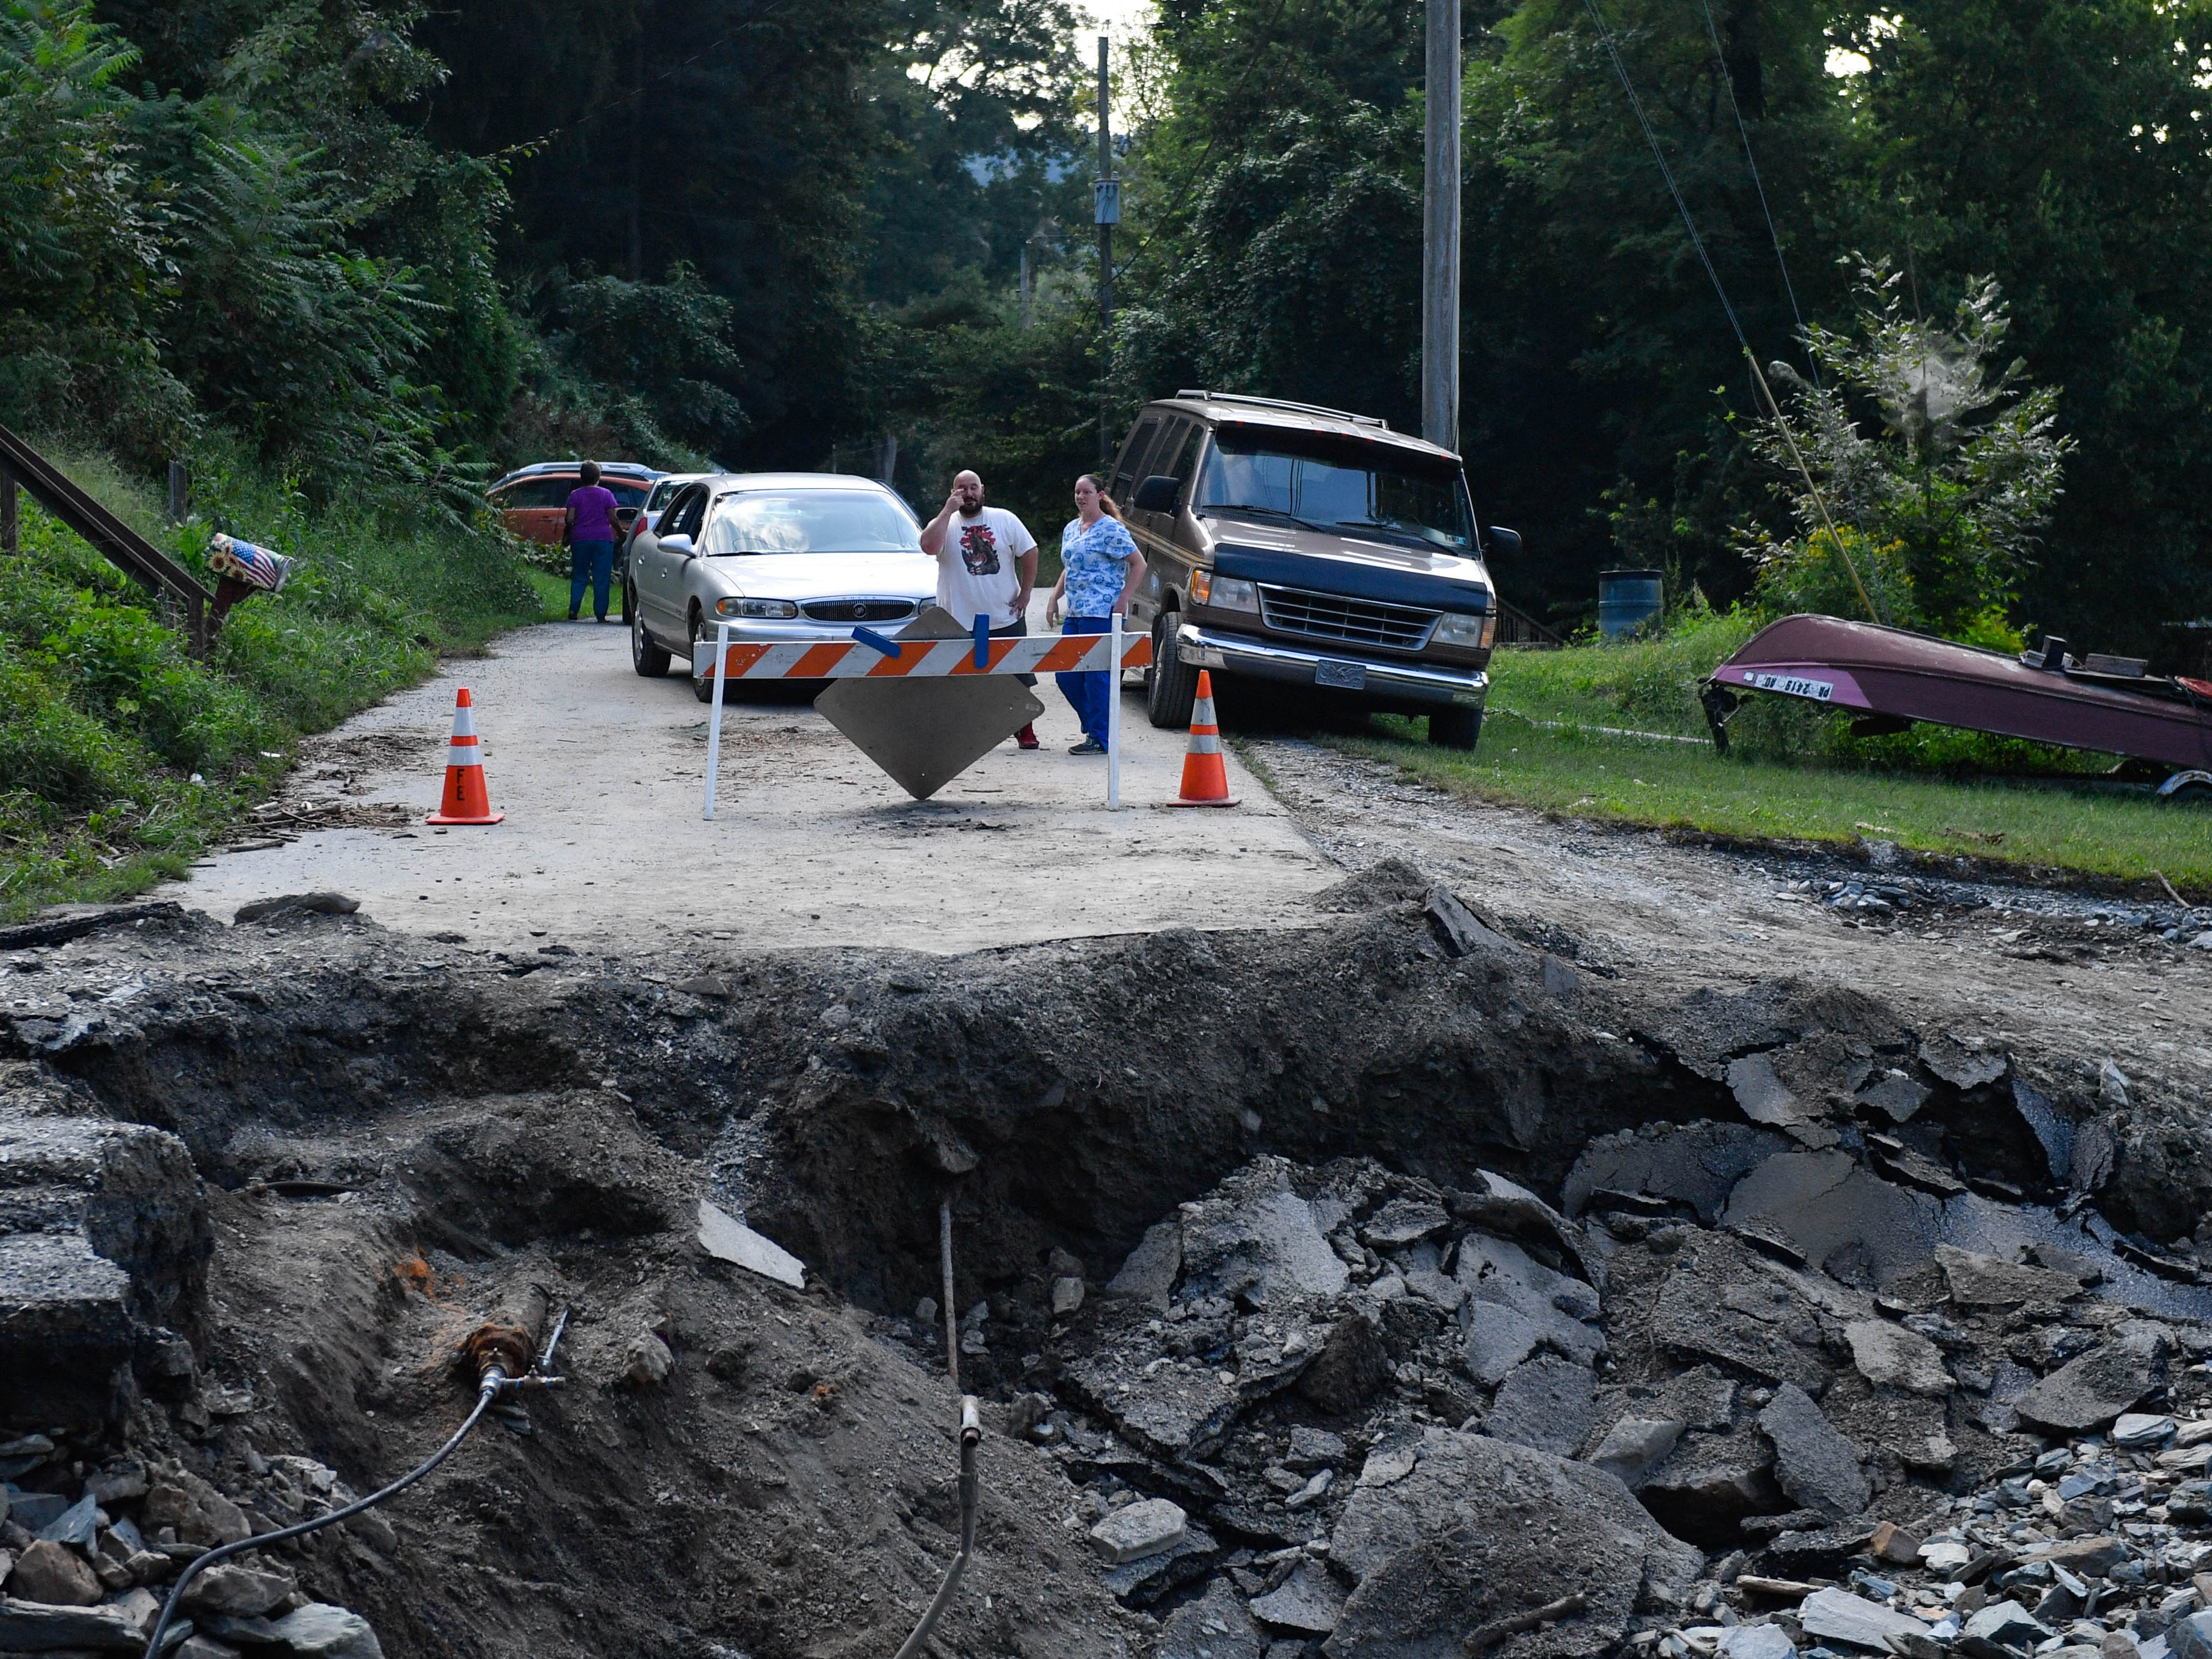 With the bridge gone, residents must take a longer, steeper route out of their neighborhood.